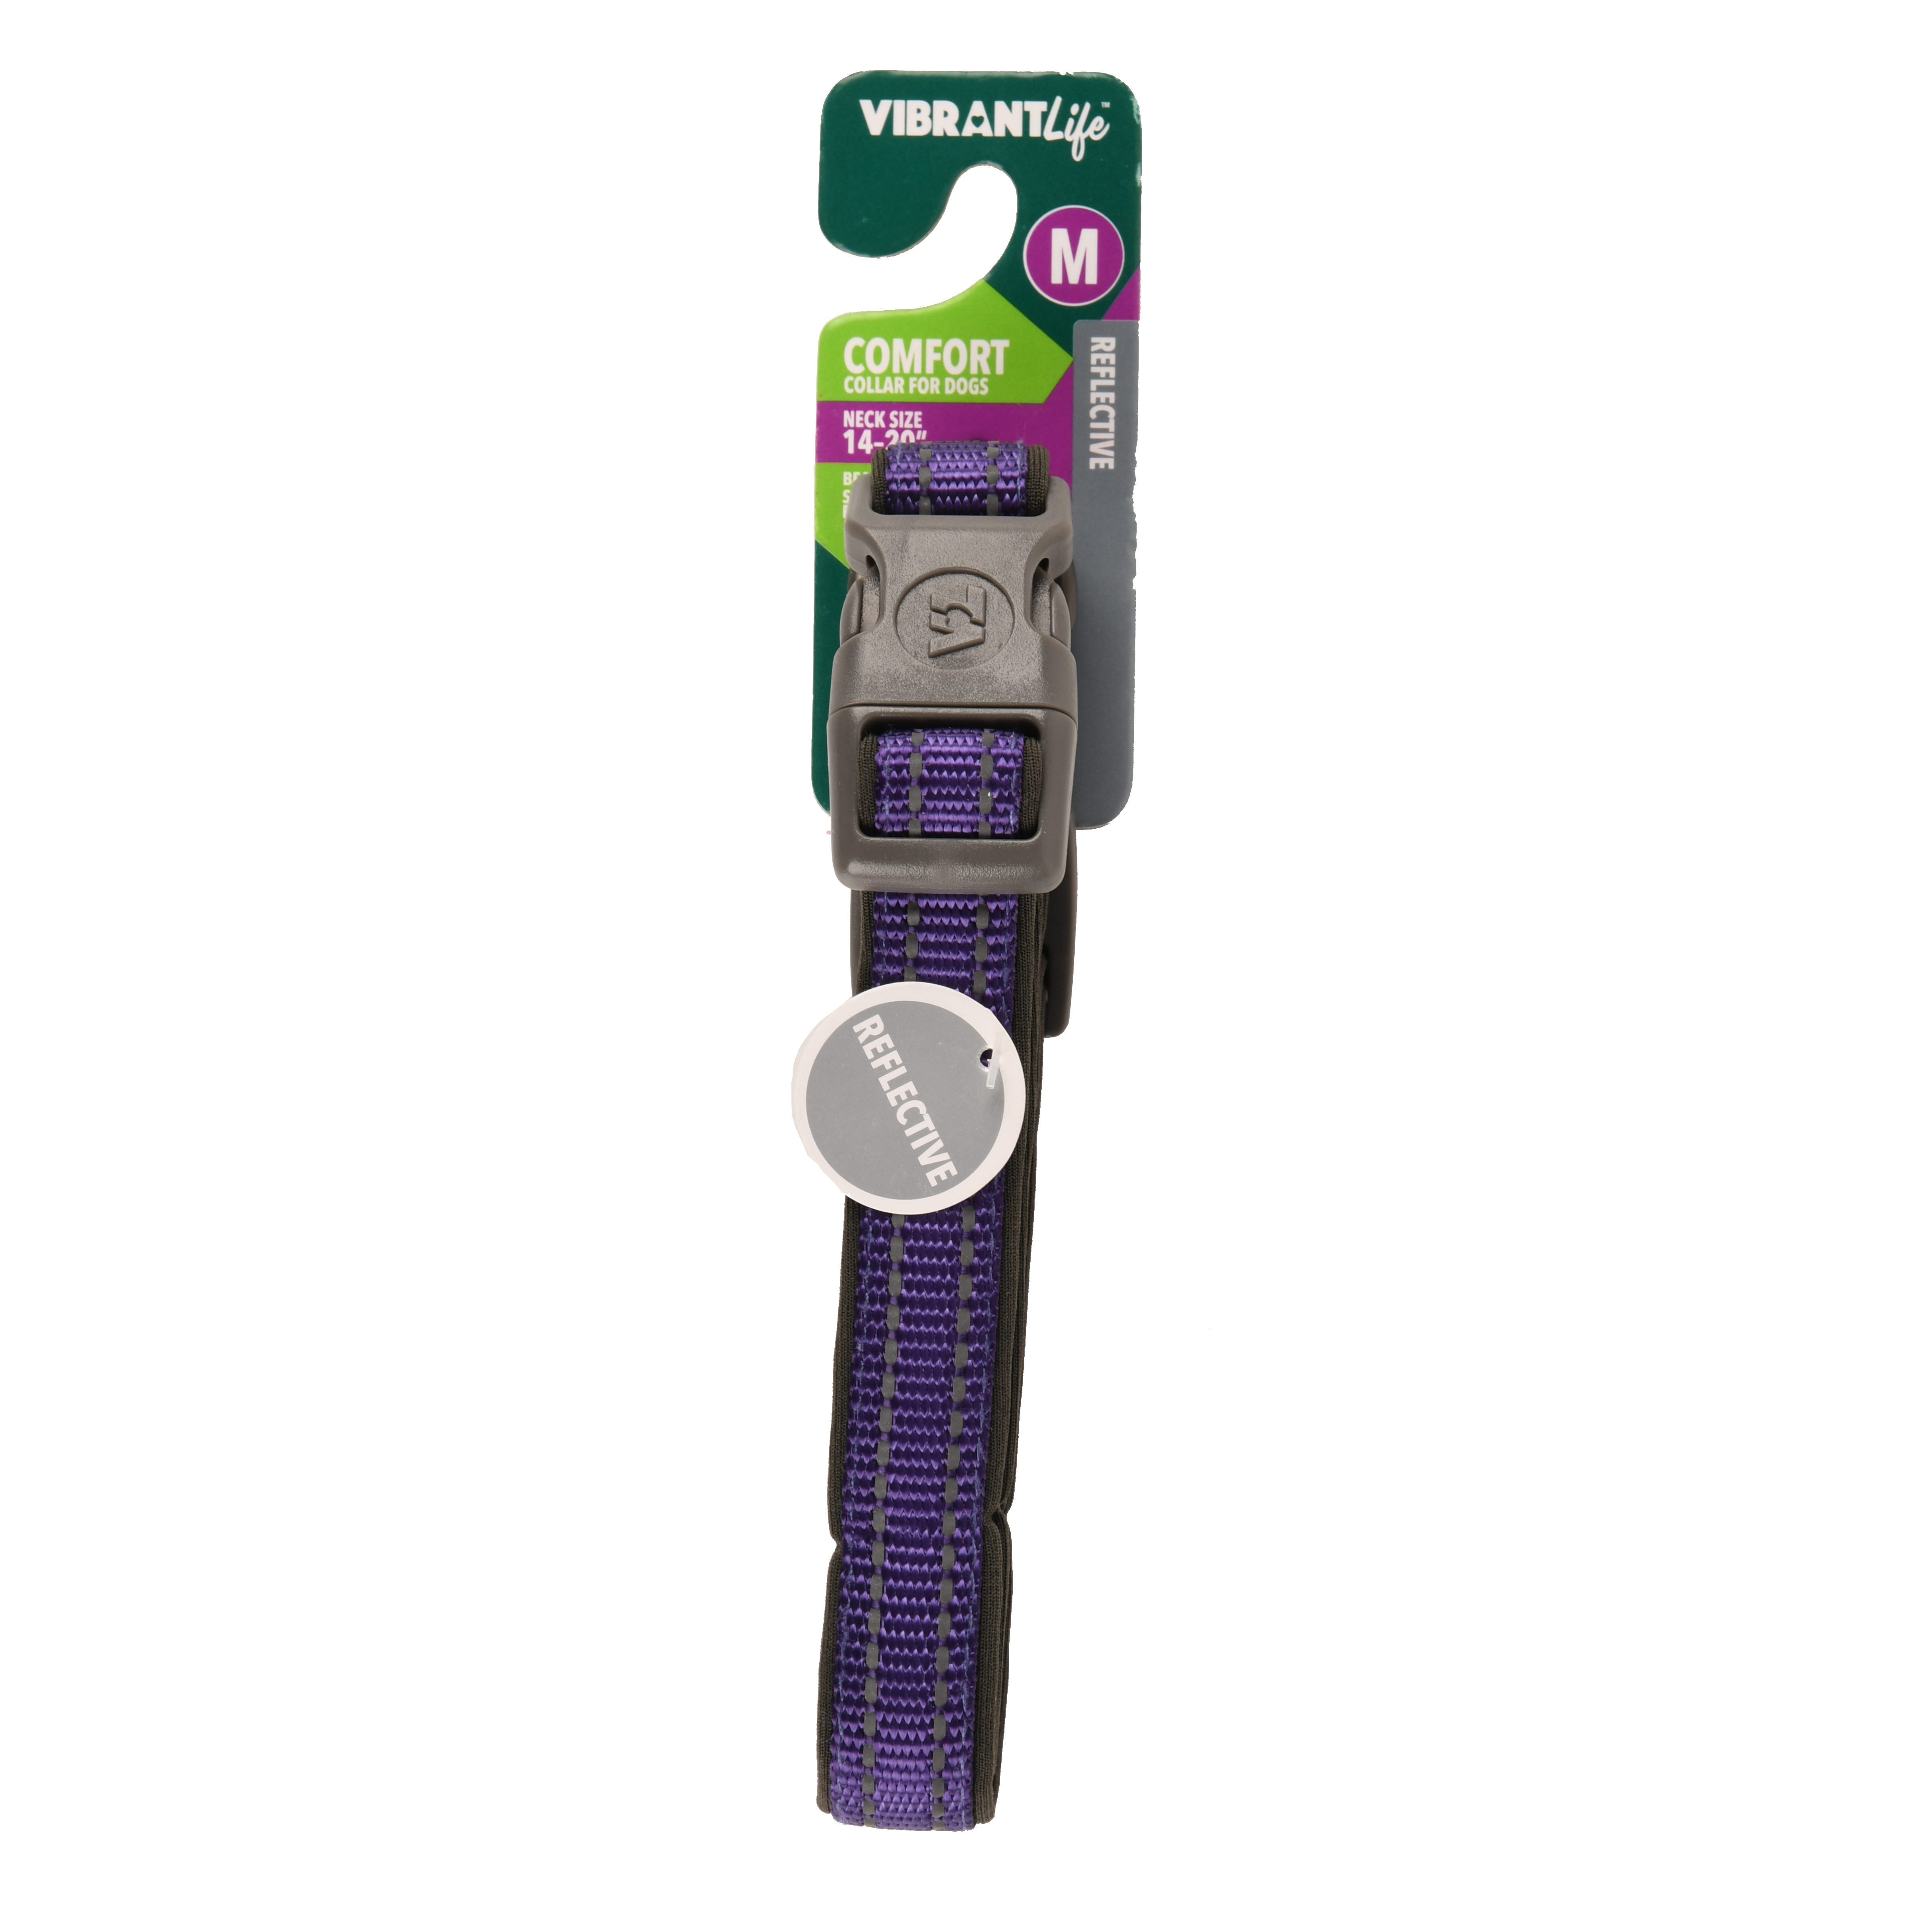 Vibrant Life Comfort Dog Collar, Reflective Purple Gray Black, Medium by Wal-Mart Stores, Inc.